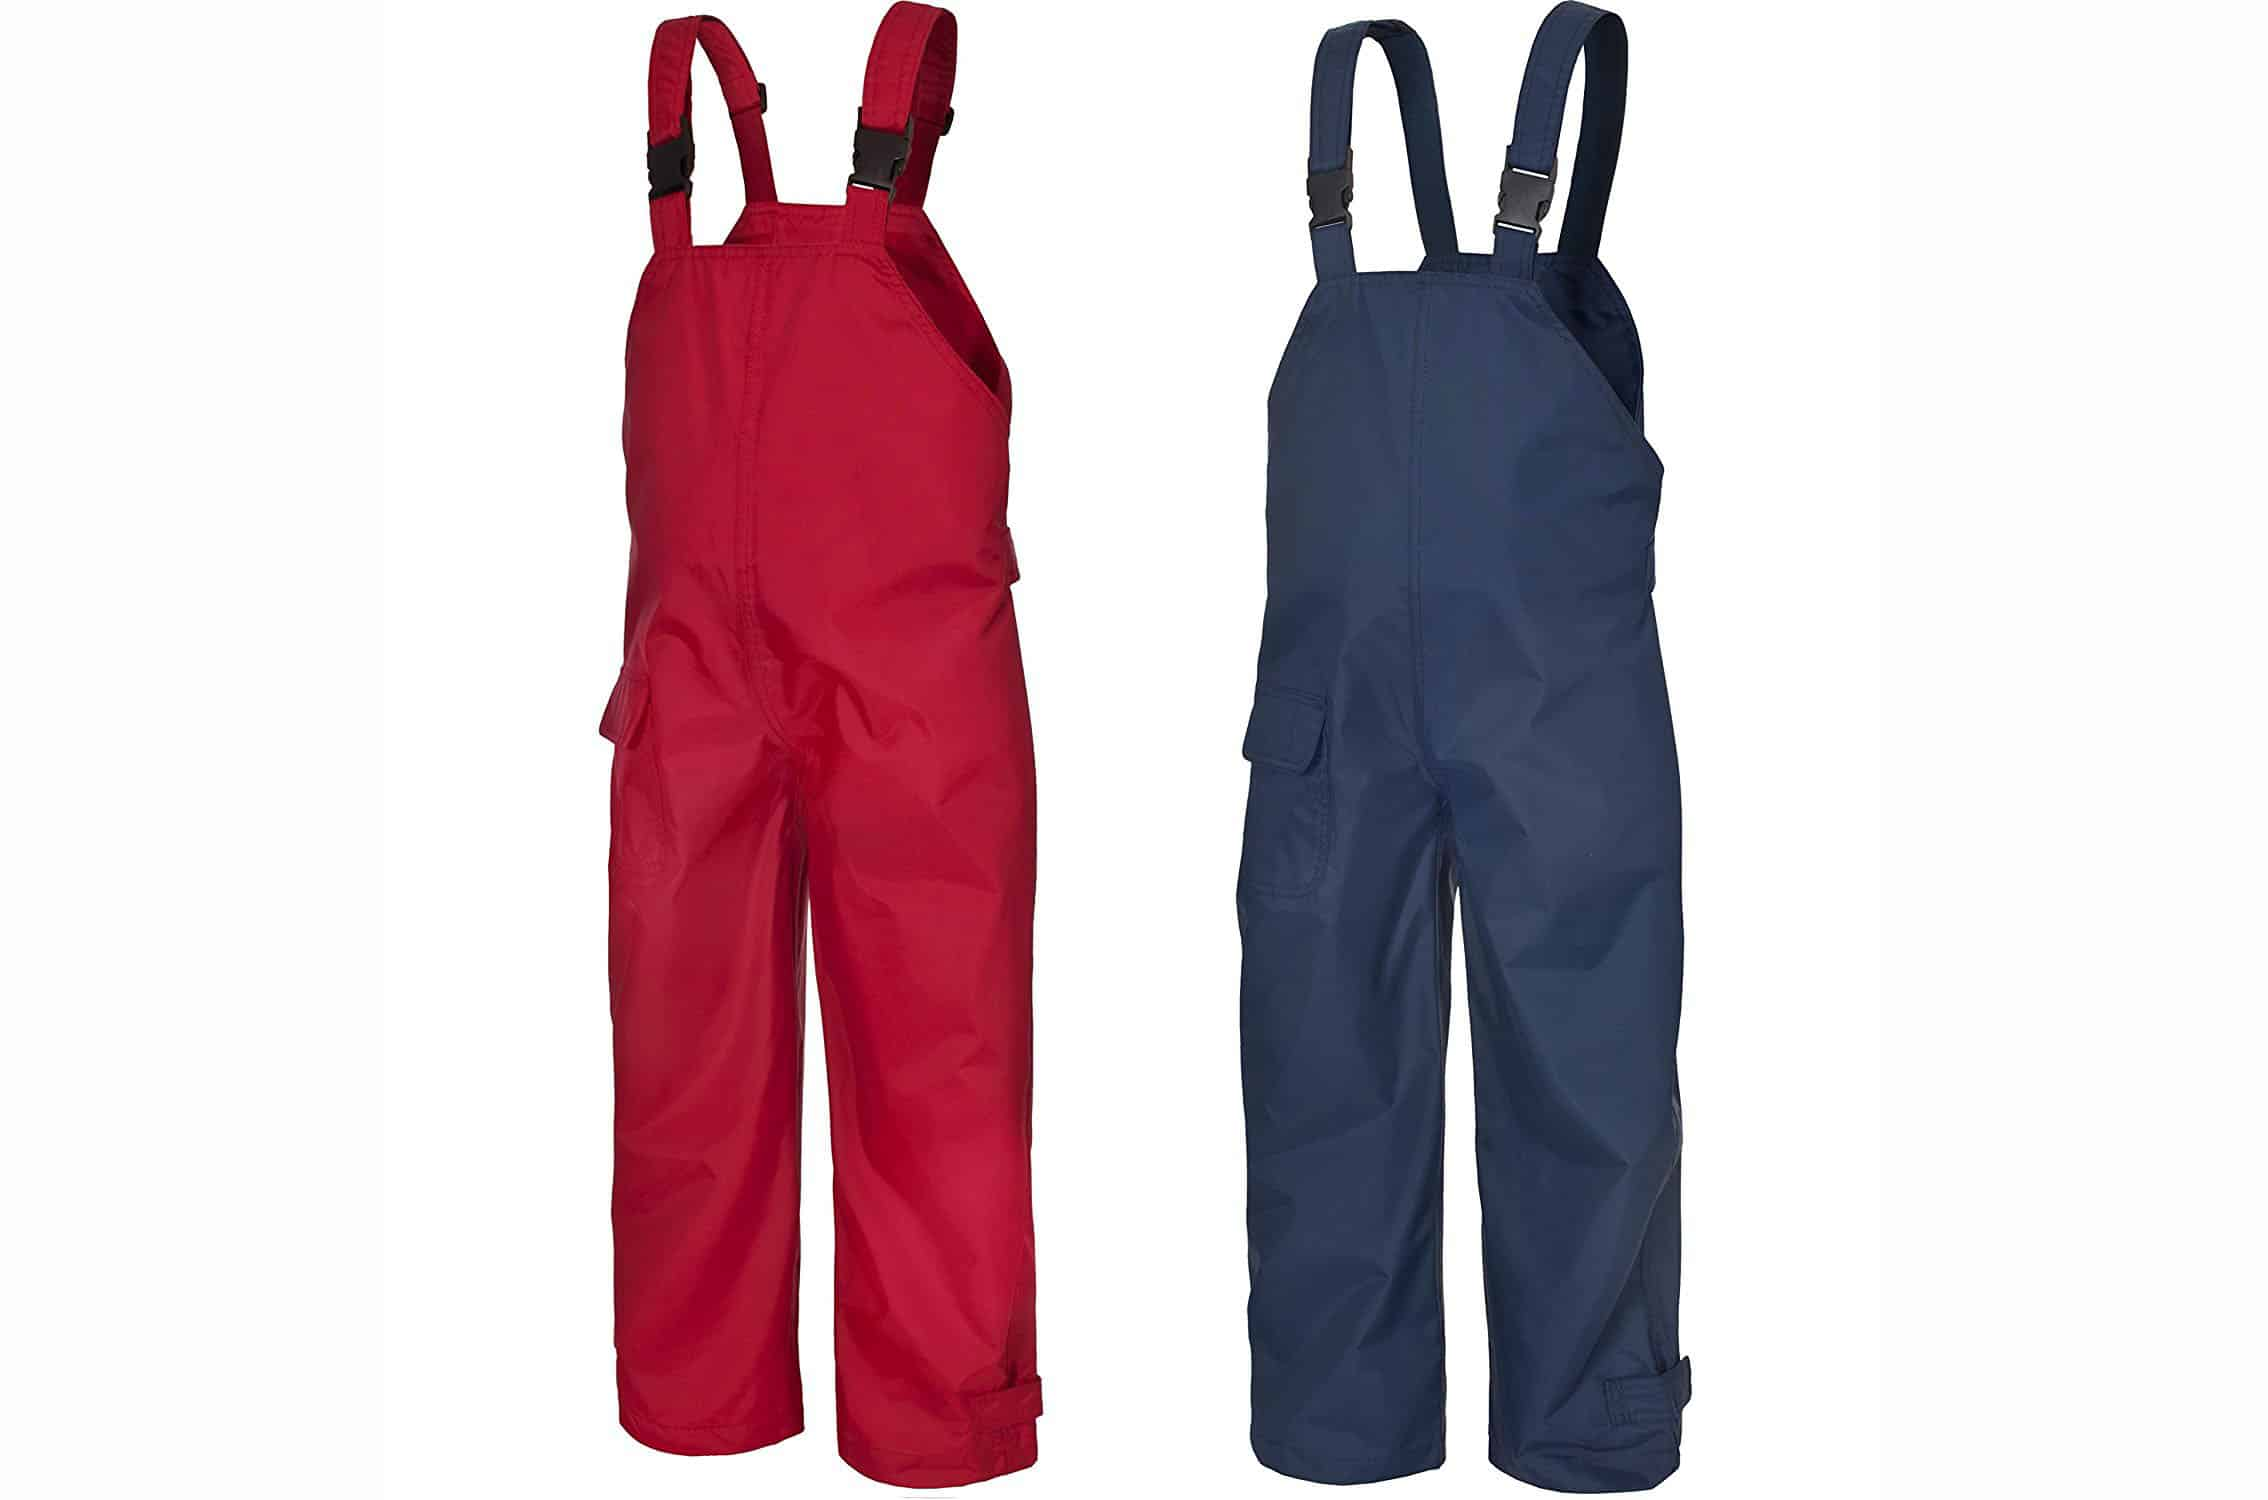 78d5253368c5 Kids Waterproofs - Weatherproof Clothes for Wet Days Out ...